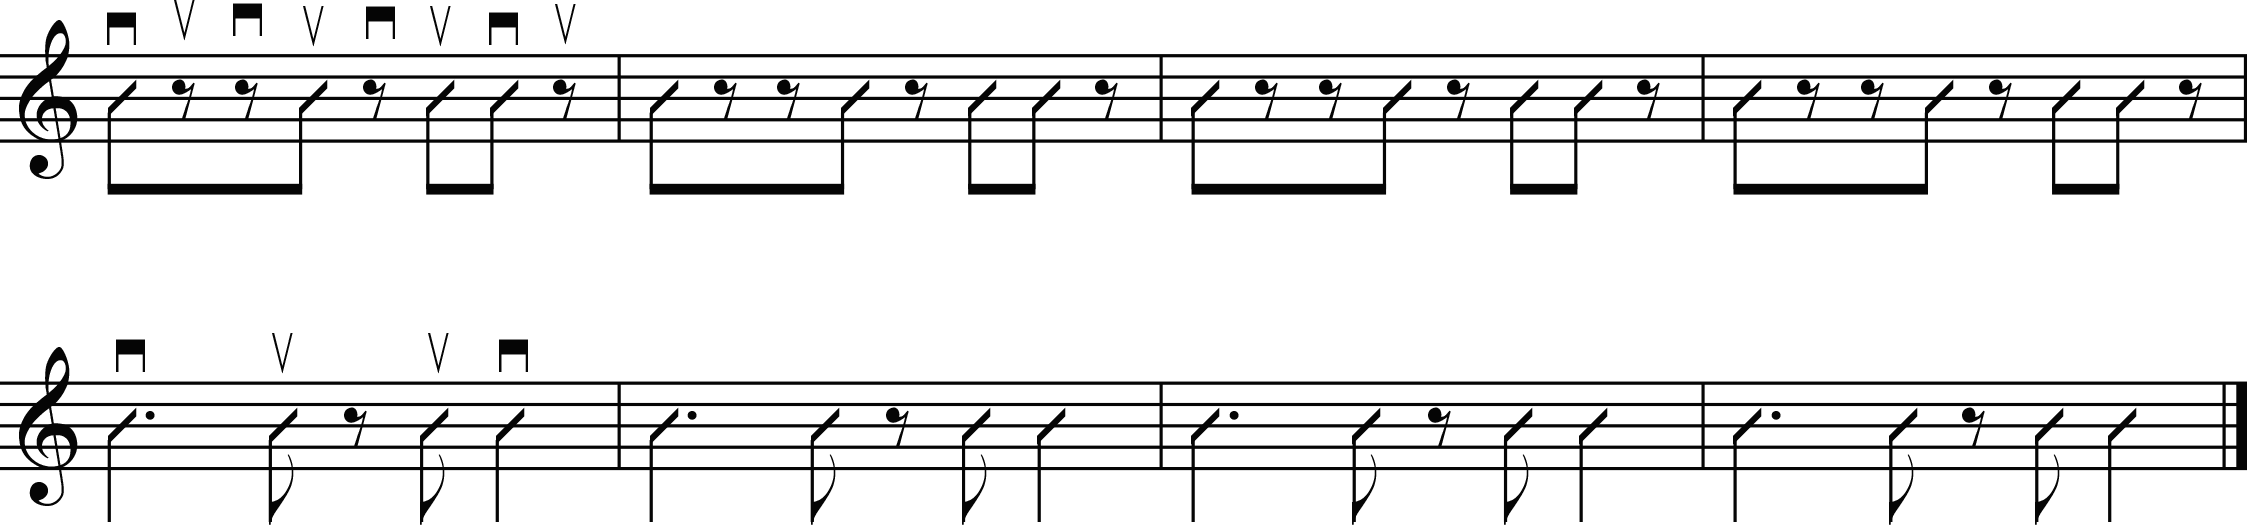 a series of simple strumming patterns for guitar.